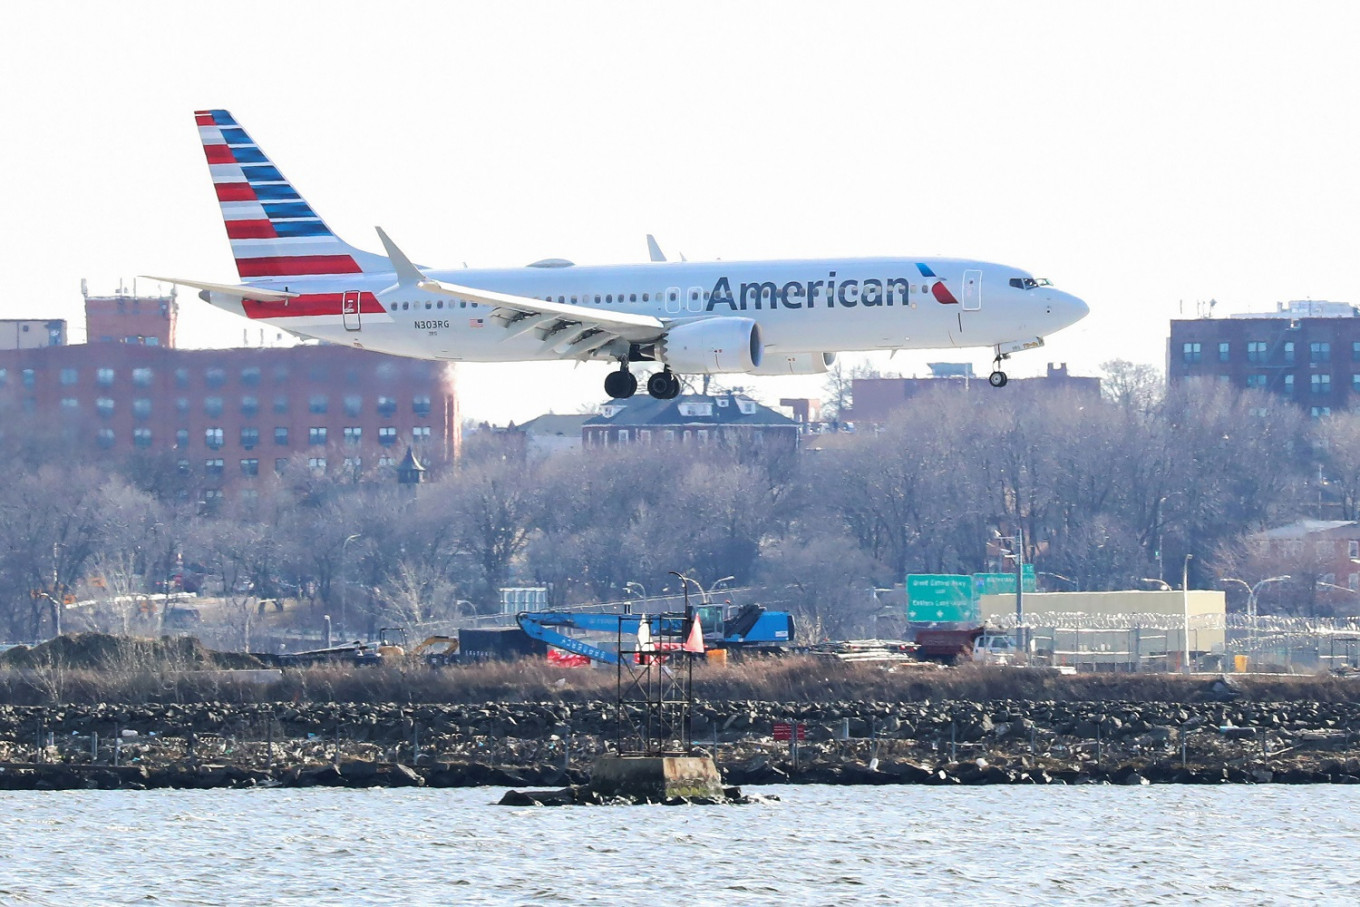 US screened over 1 million airline passengers Sunday for first time since March